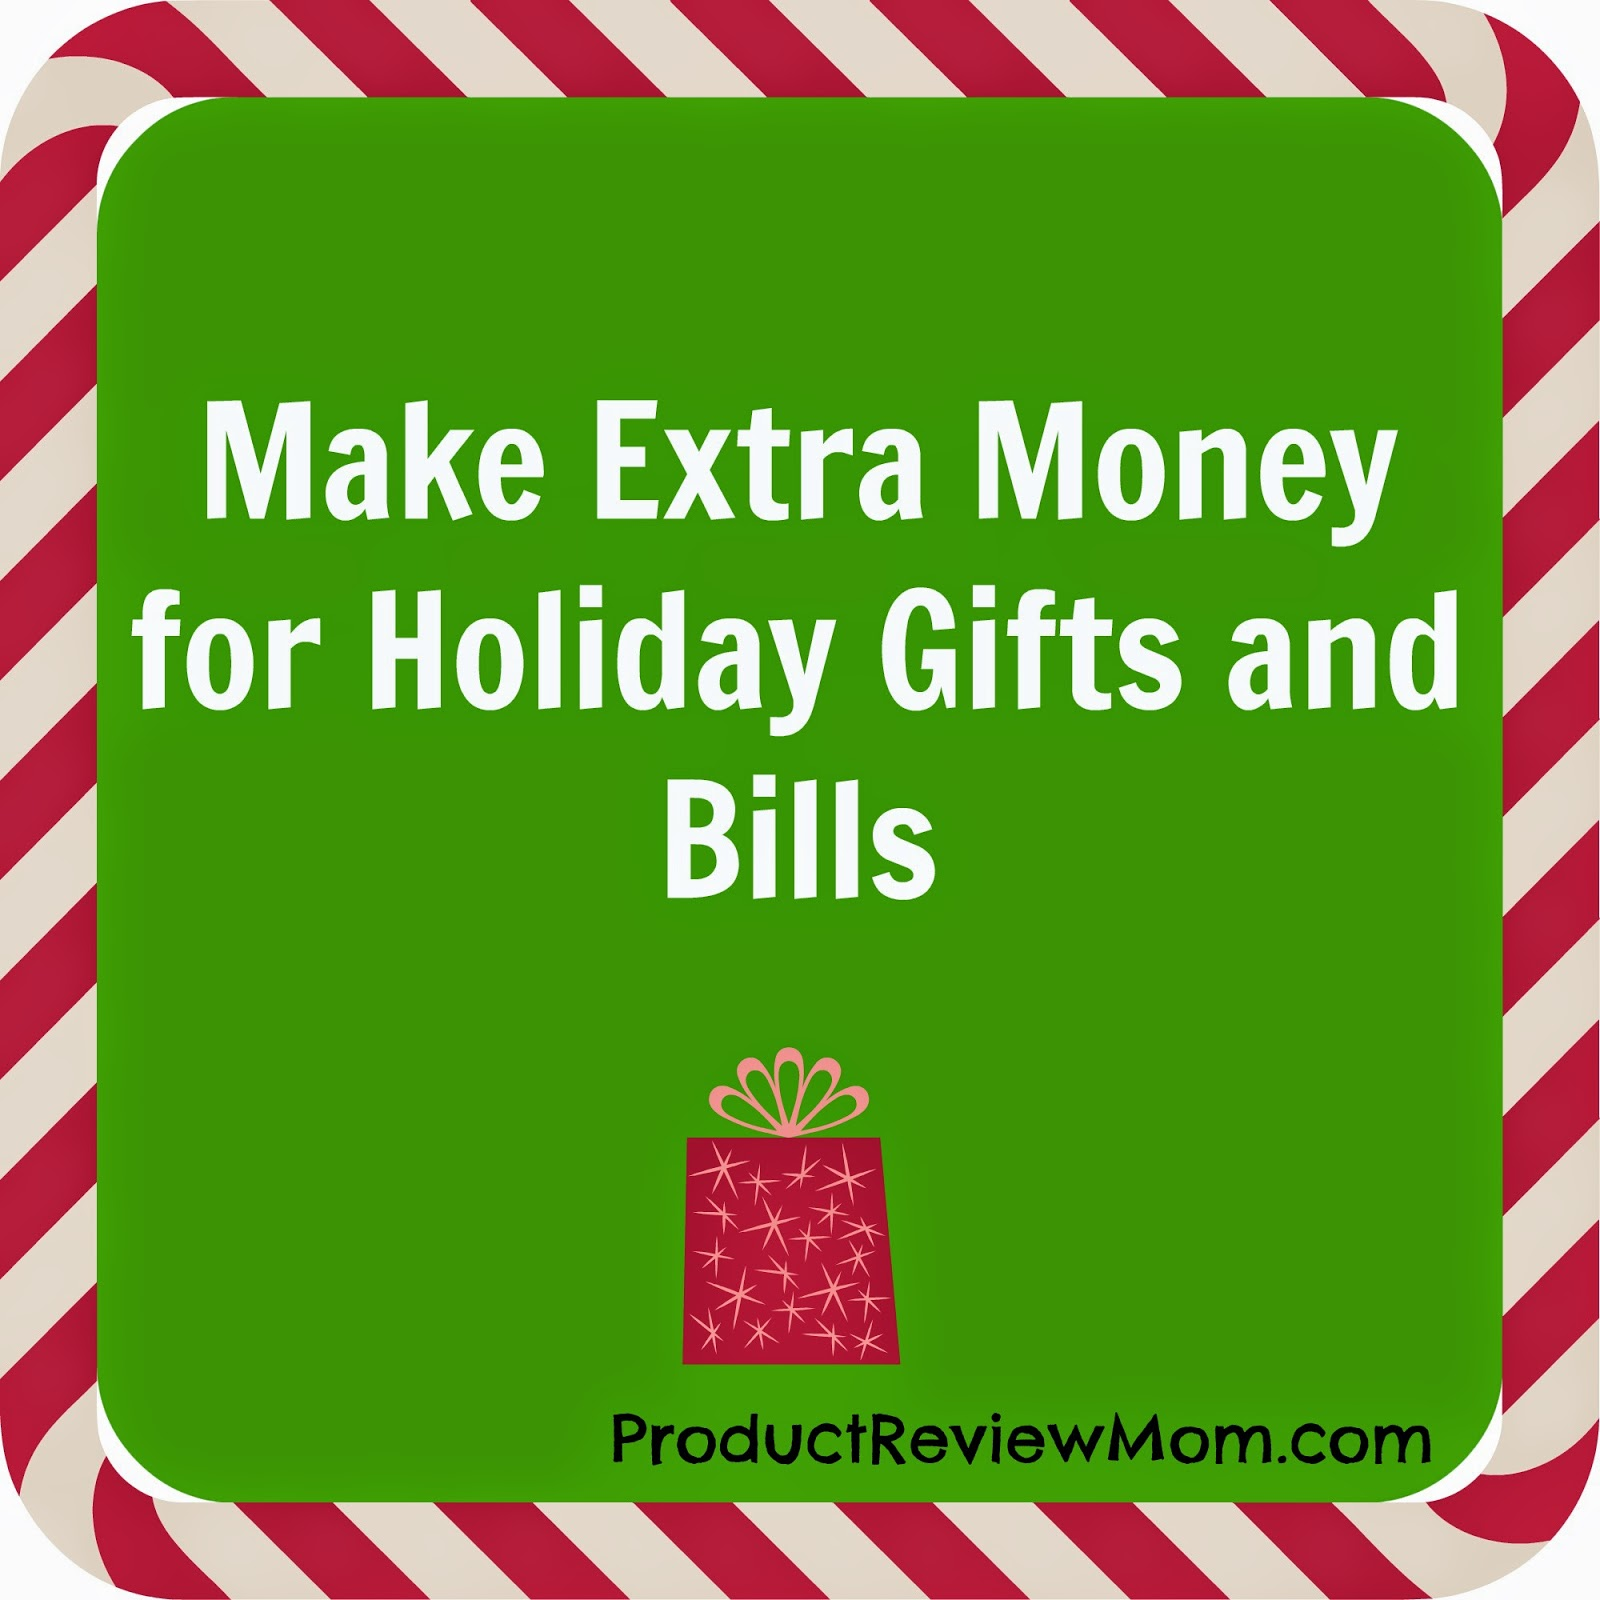 Make Extra Money for Holiday Gifts and Bills- #holidays #christmas #bills via www.Productreviewmom.com